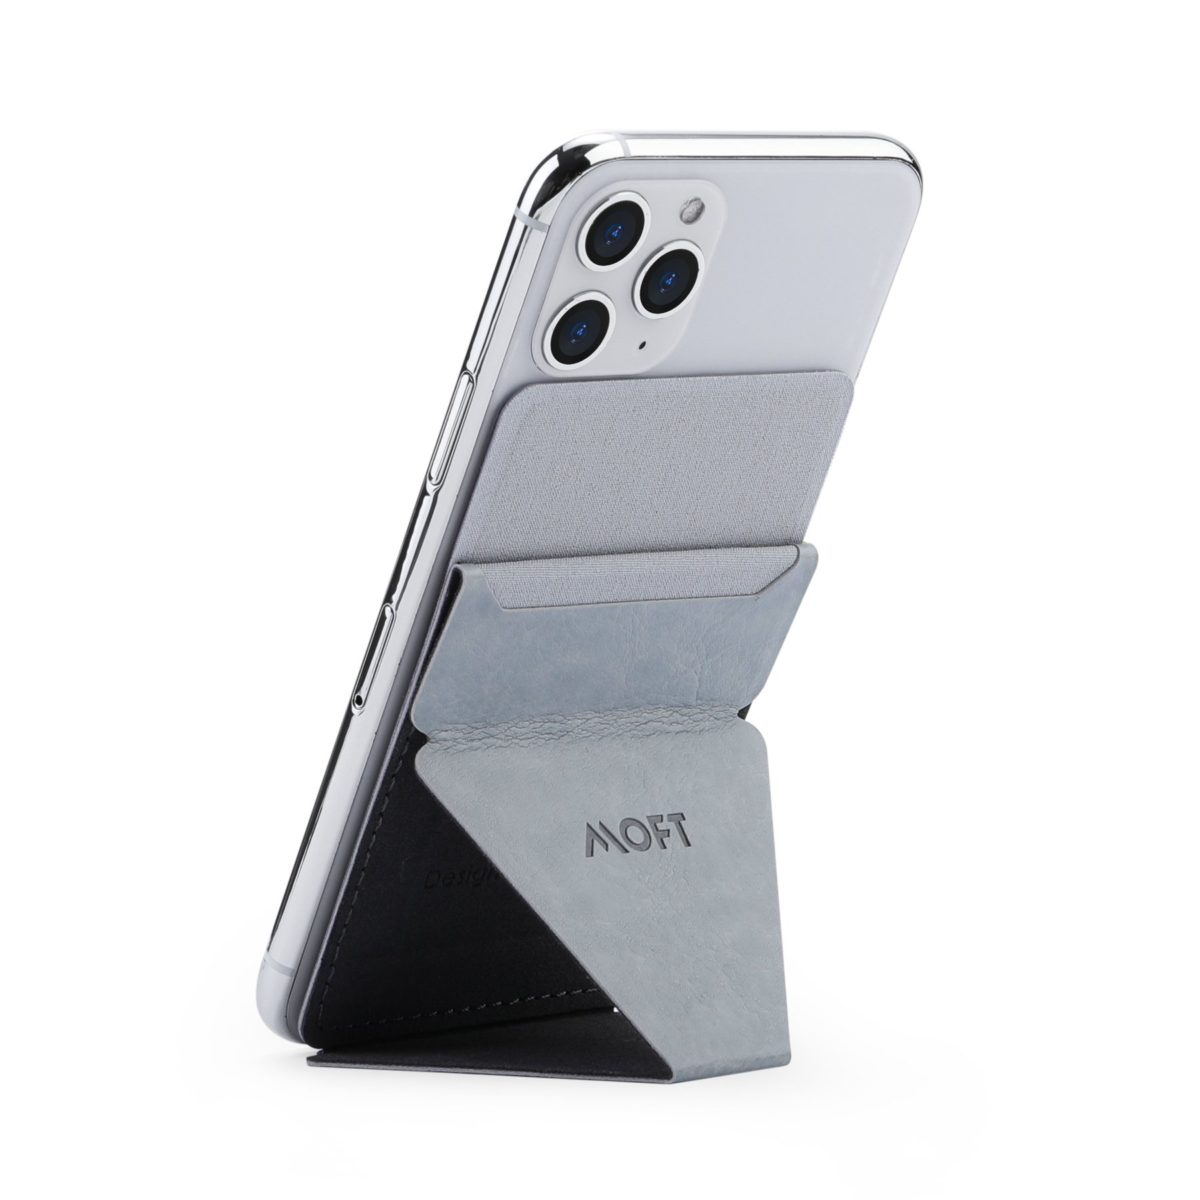 MOFT X Phone Stand אפור בהיר